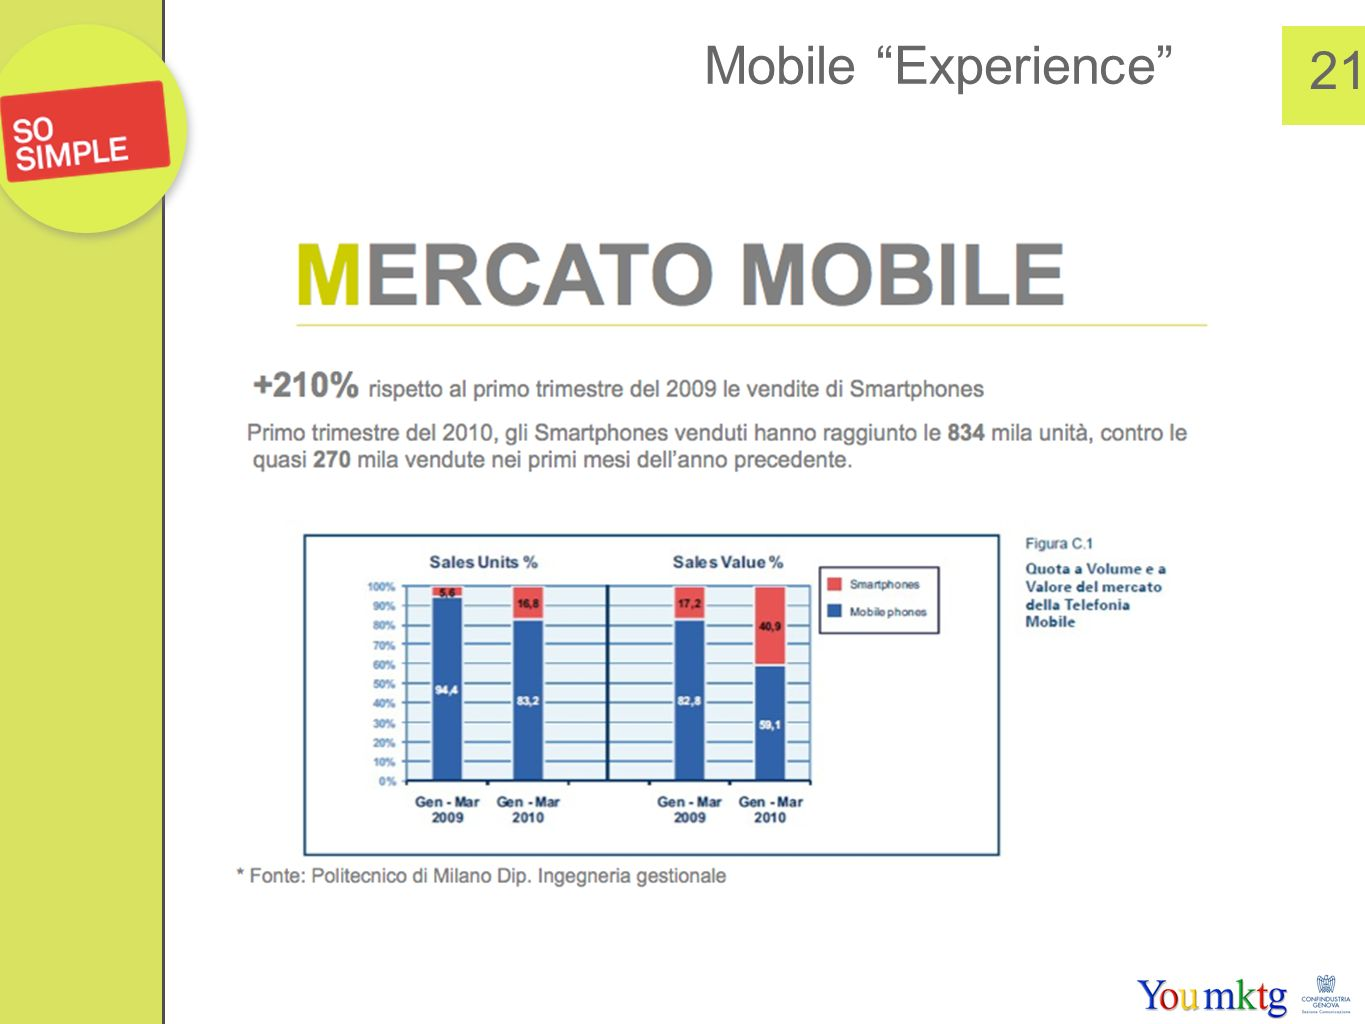 Mobile Experience 21